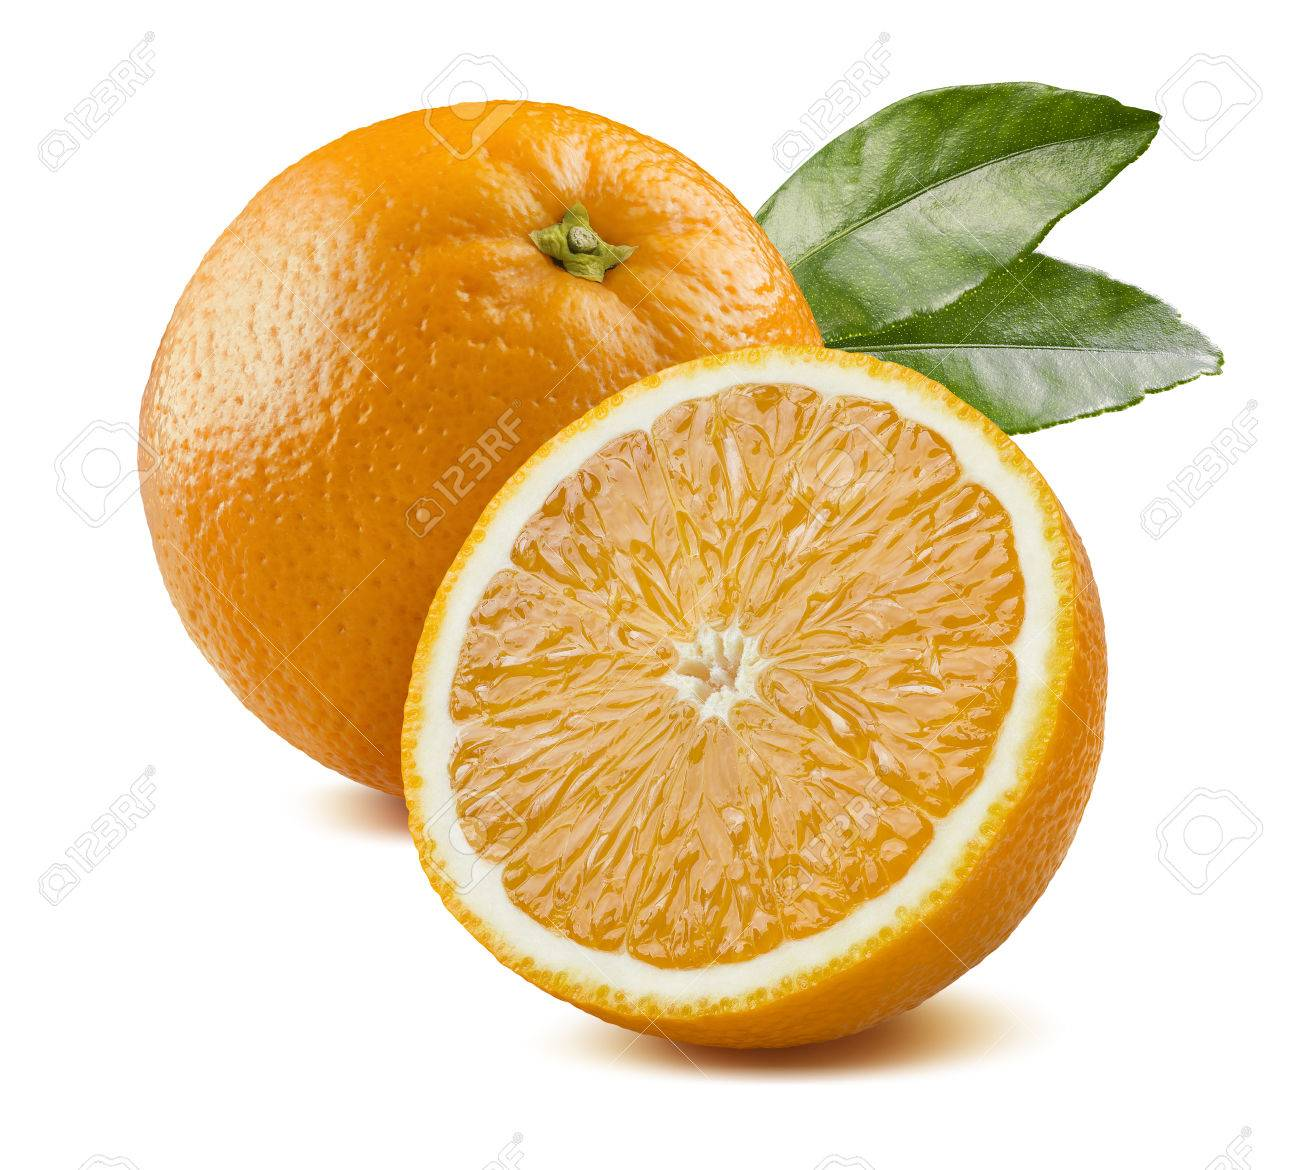 Fresh orange fruit with leaves and half piece isolated on white background as package design element - 48890540